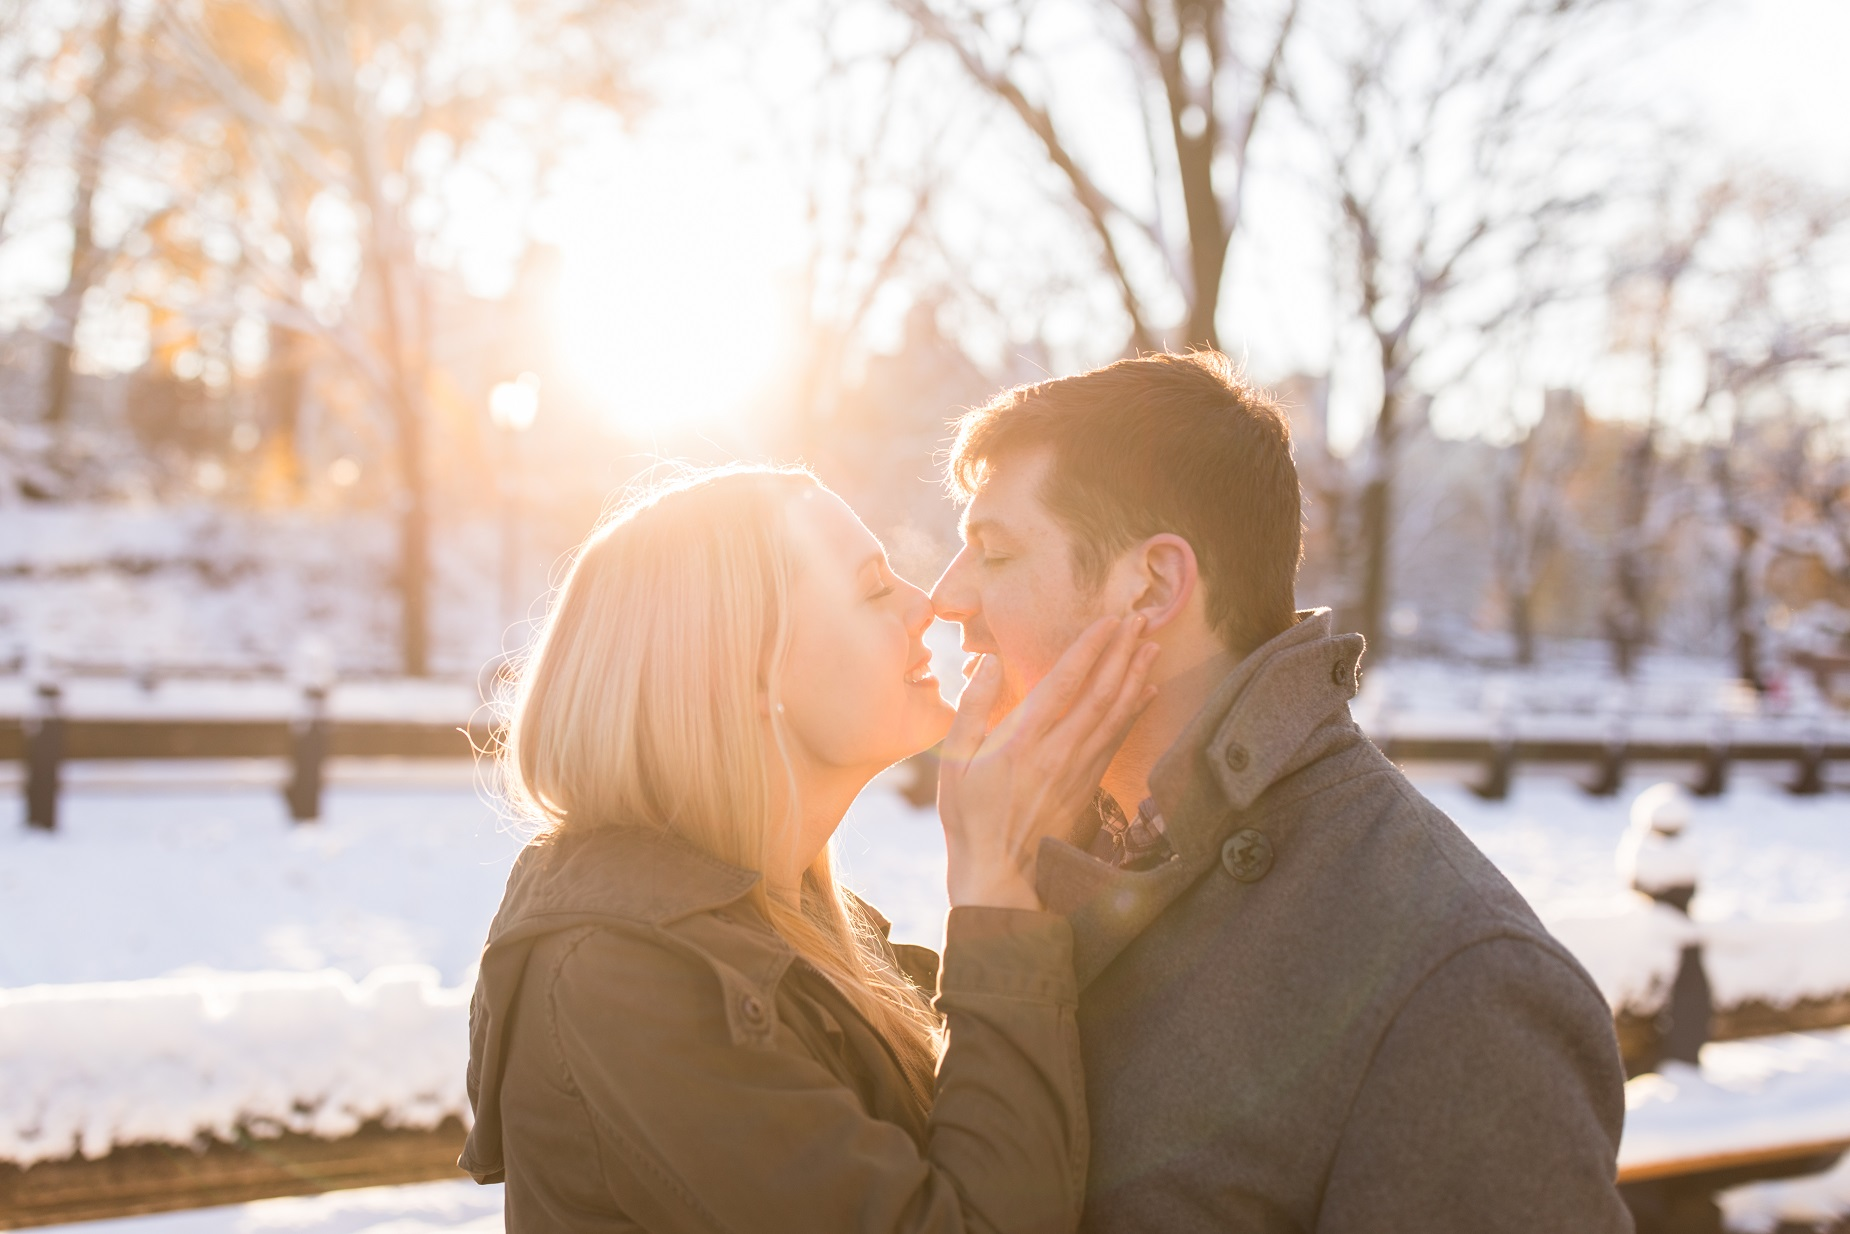 How To Stay True To Yourself In Your Relationships